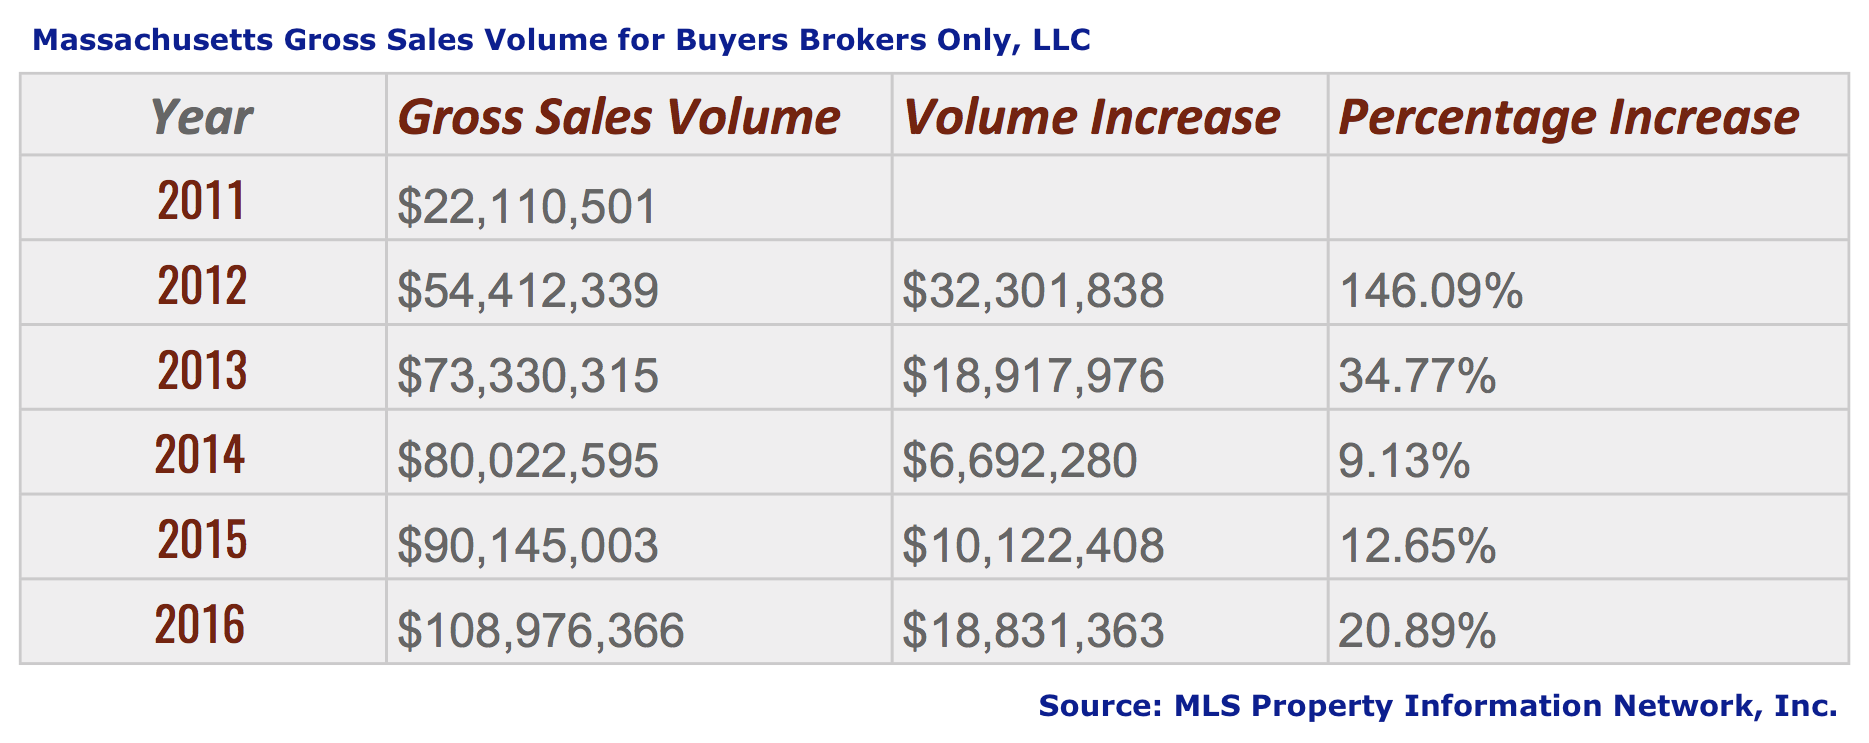 Gross Sales Volume 2011-2016 in Massachusetts for Buyers Brokers Only, LLC